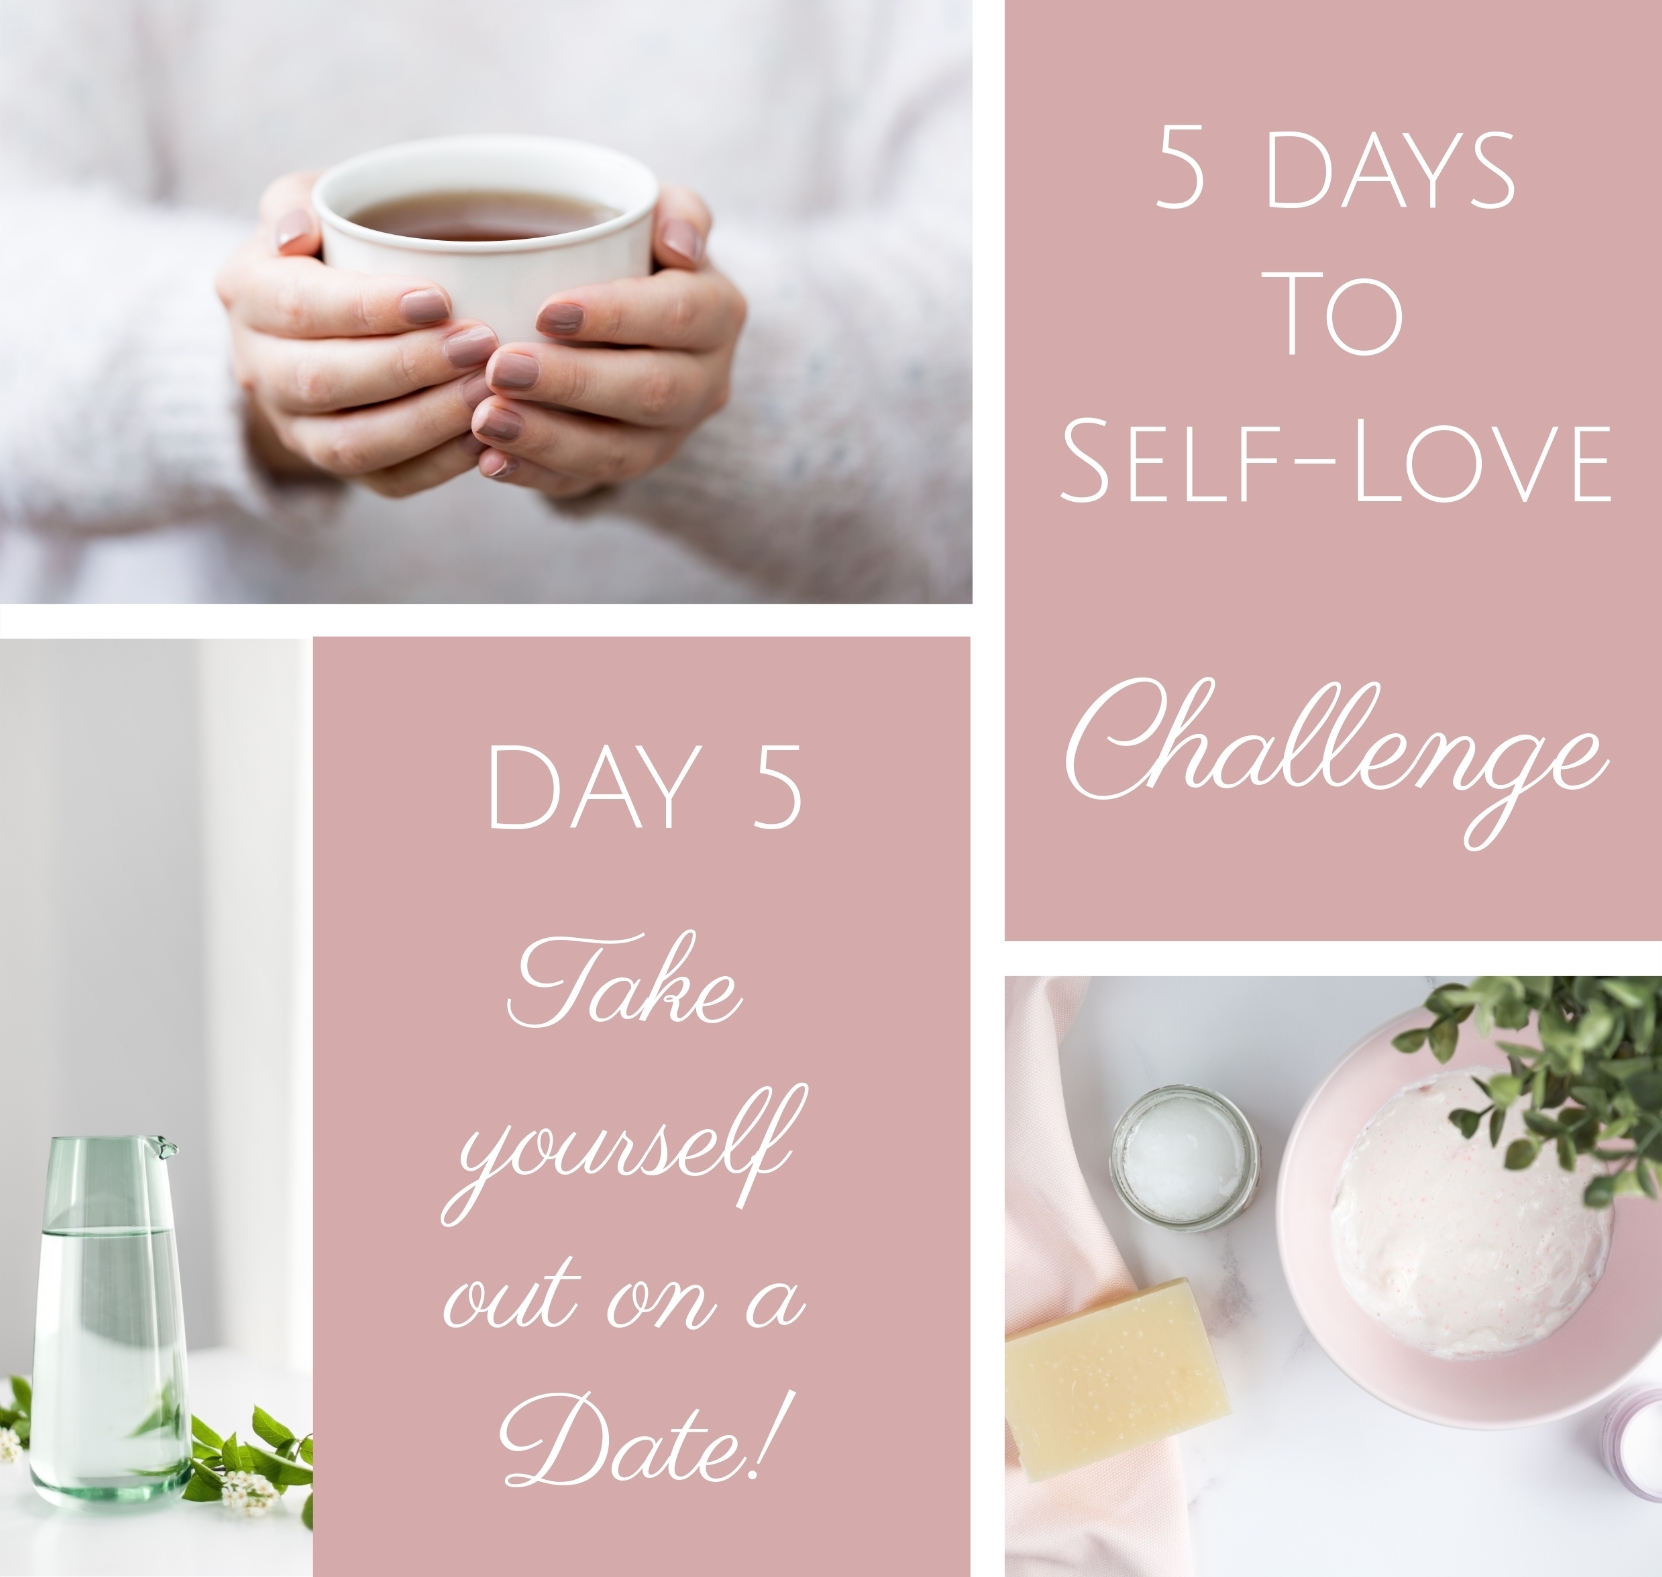 5 days to self-love - Date